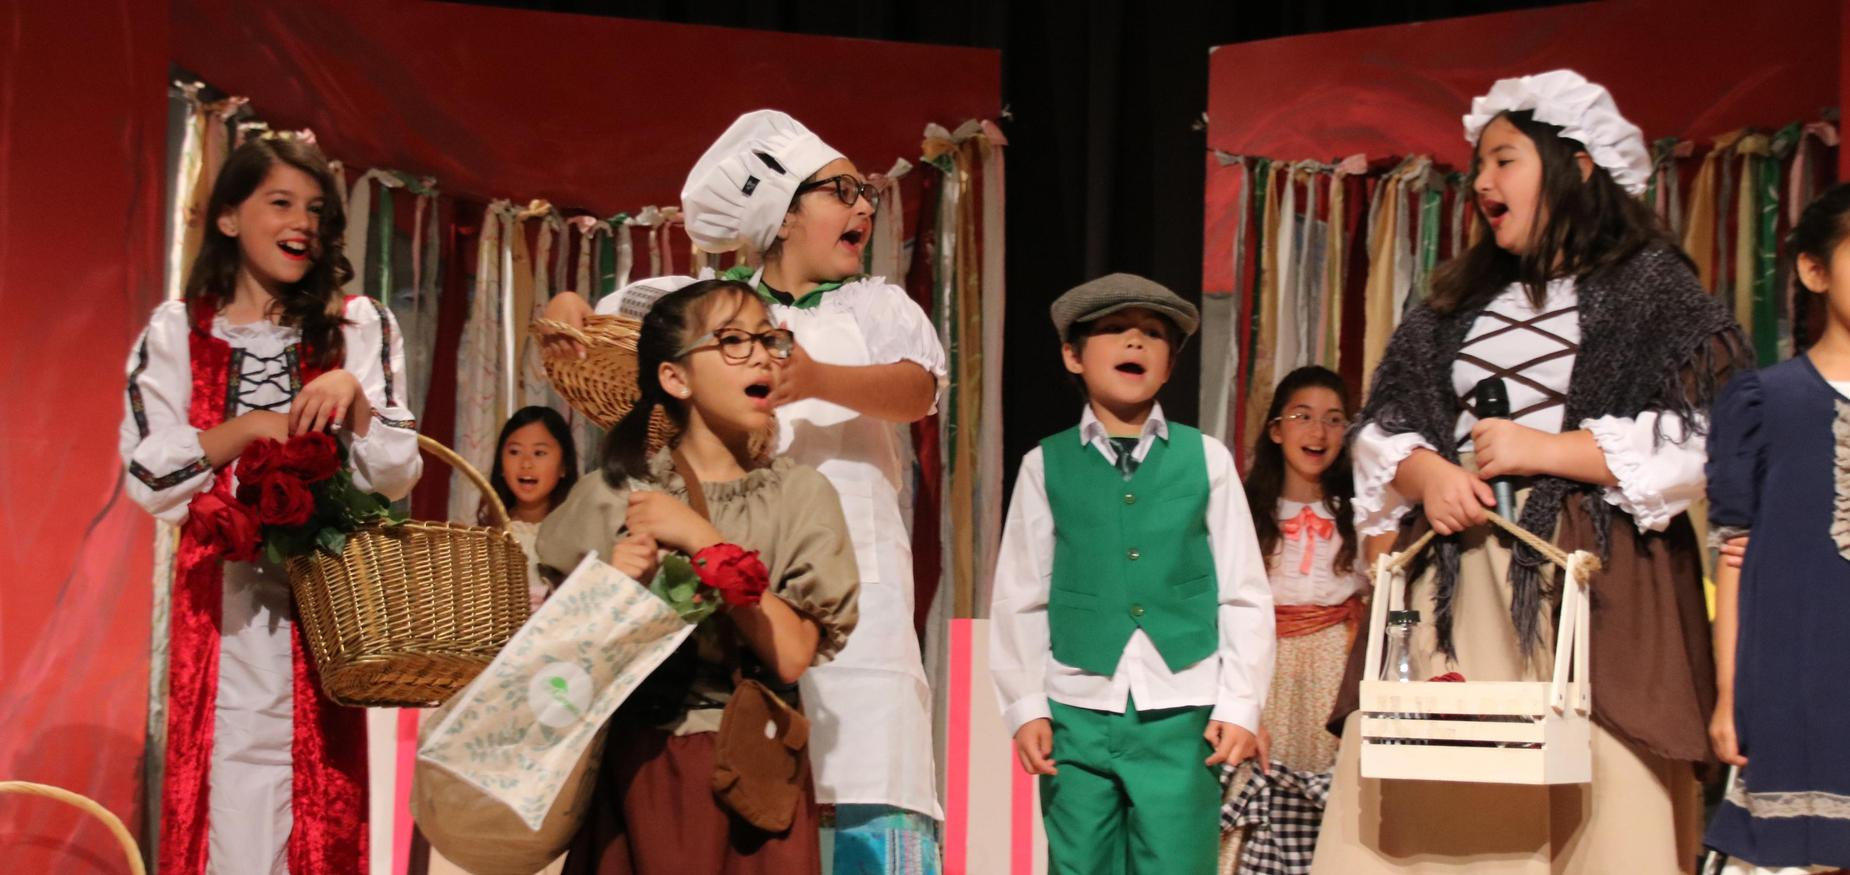 Students singing in the Adventures of Pinocchio